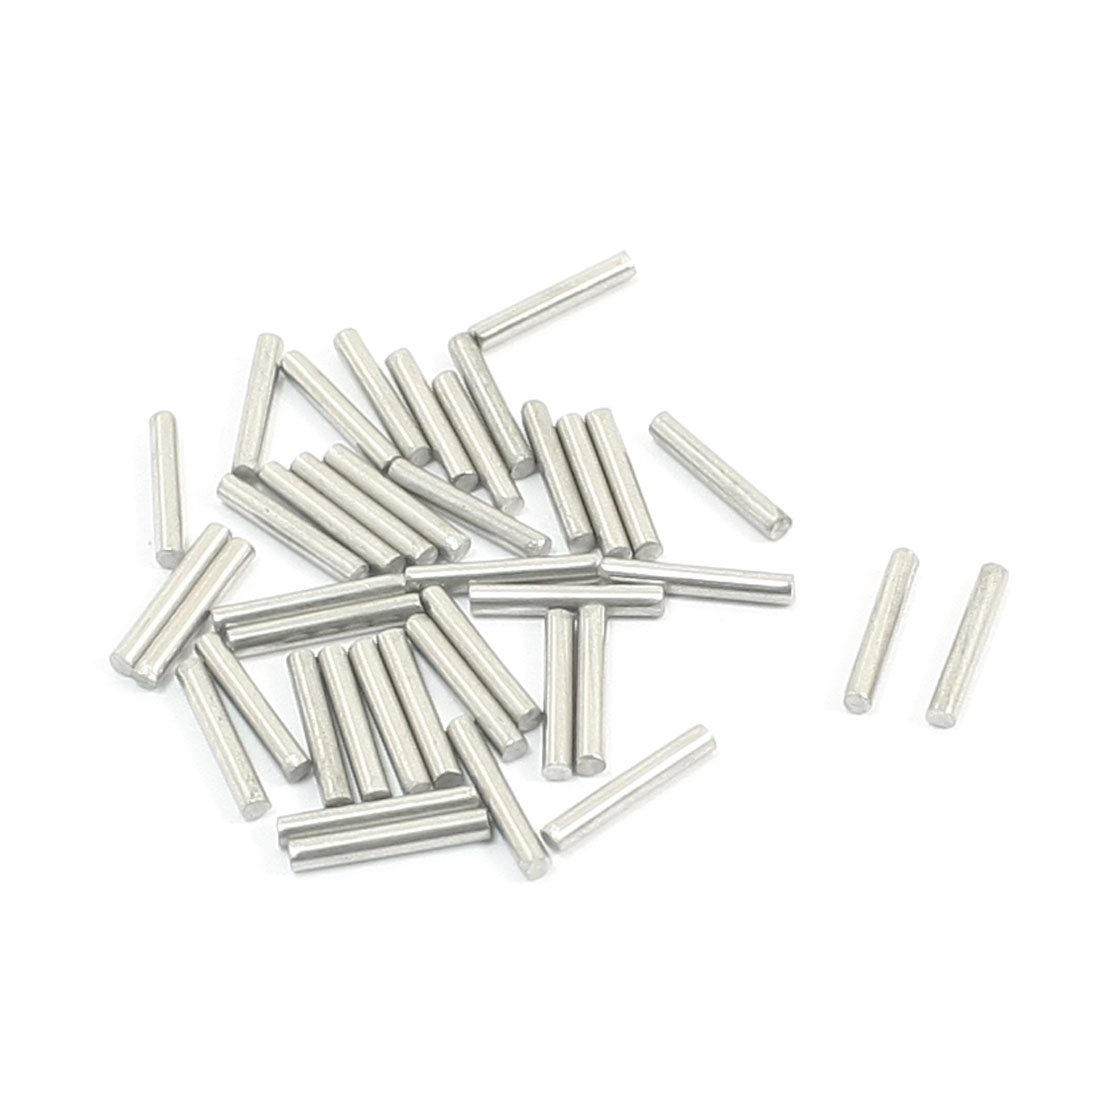 40 Pcs RC Toy Car Model Part Stainless Steel Round Rods Axles 1.6mm x 10mm